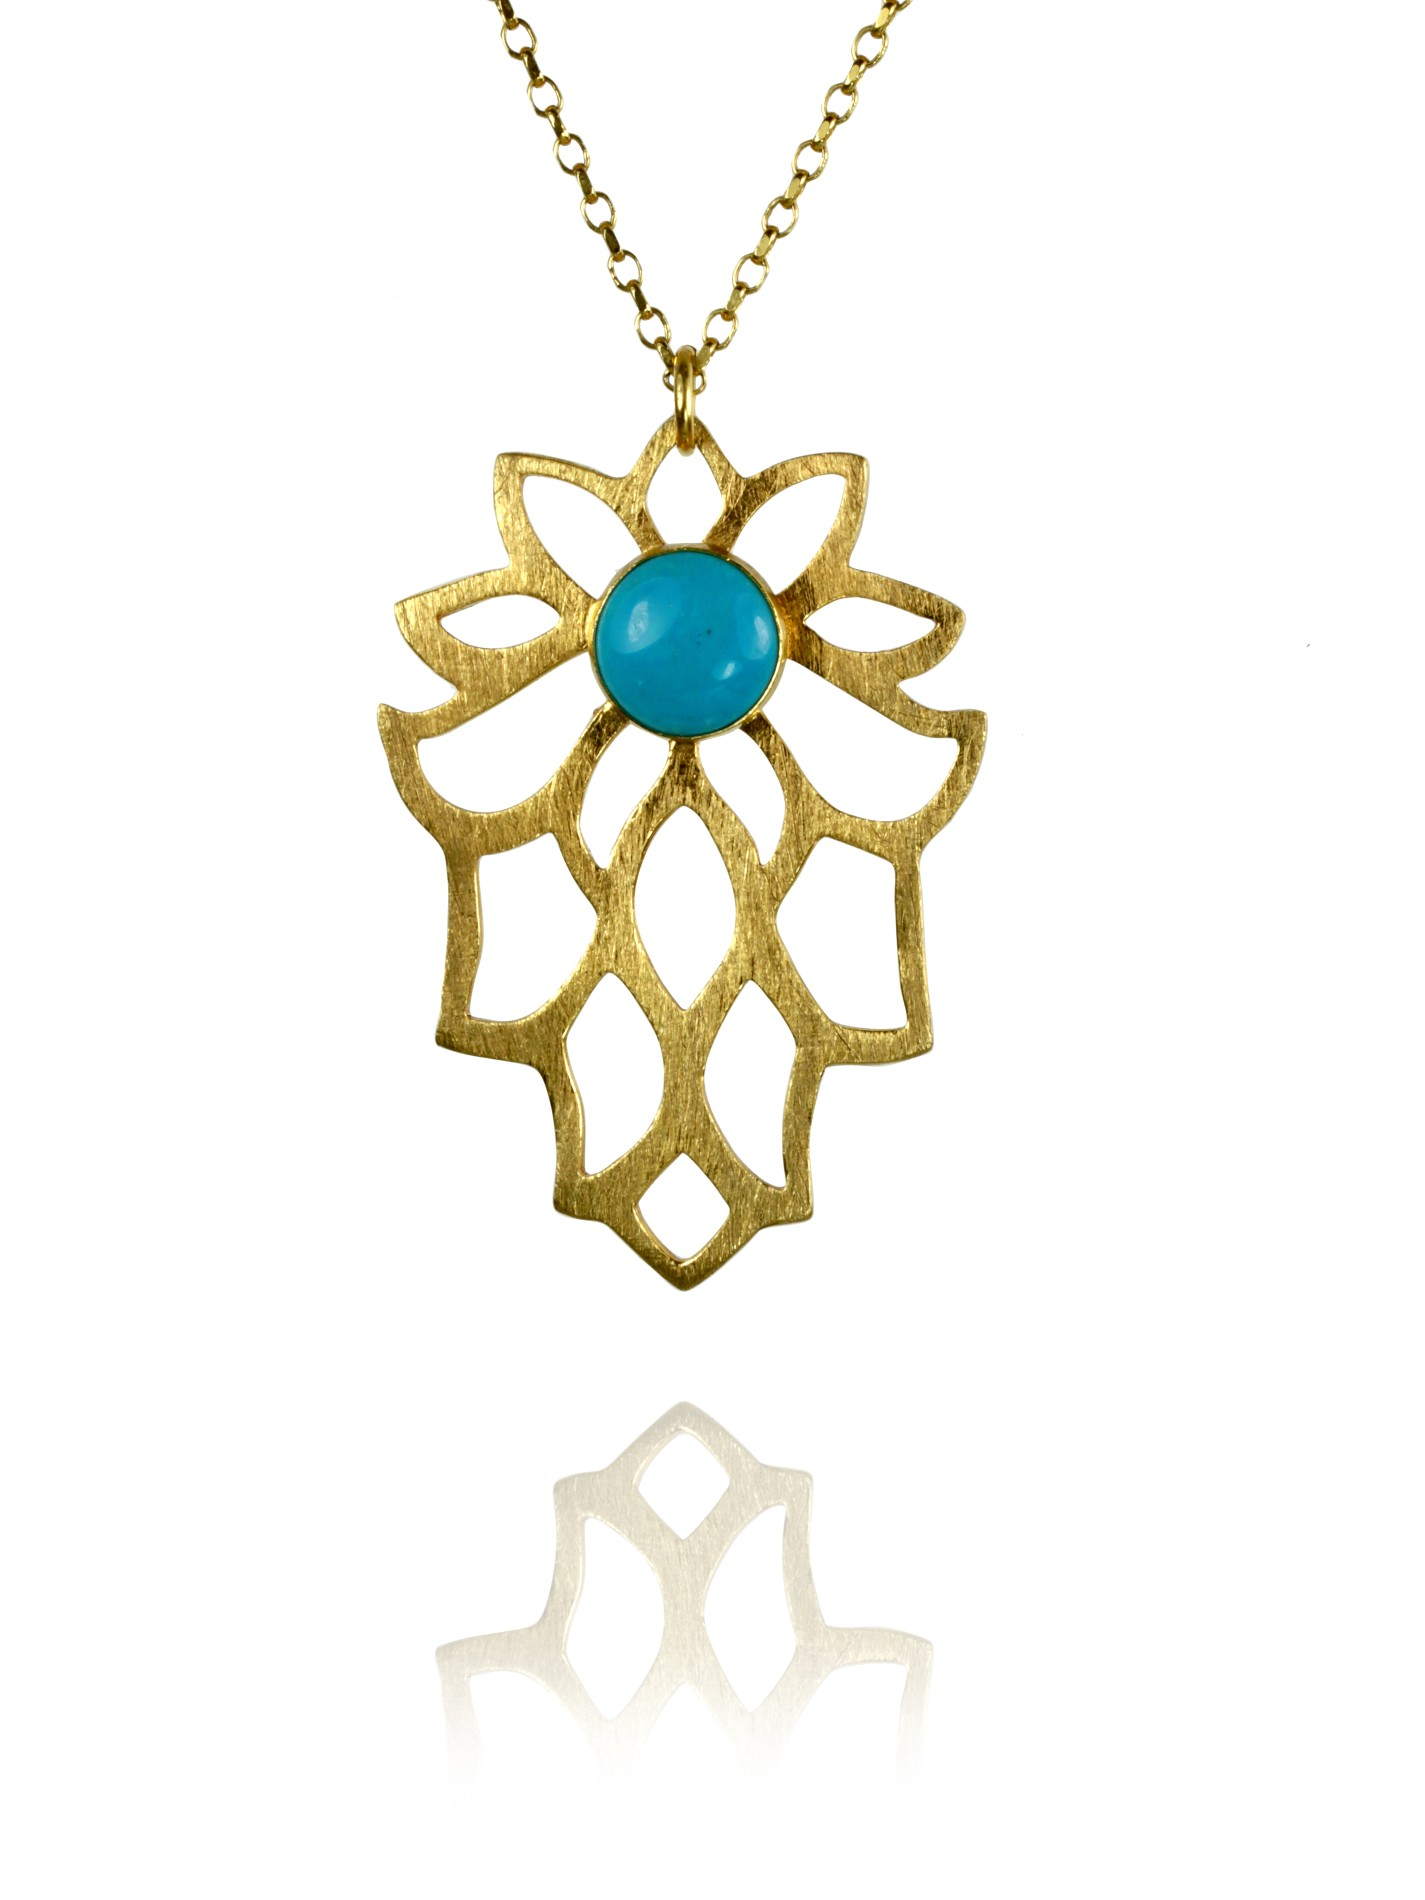 Bloom necklace silver vermeil turquoise 82401TG 1